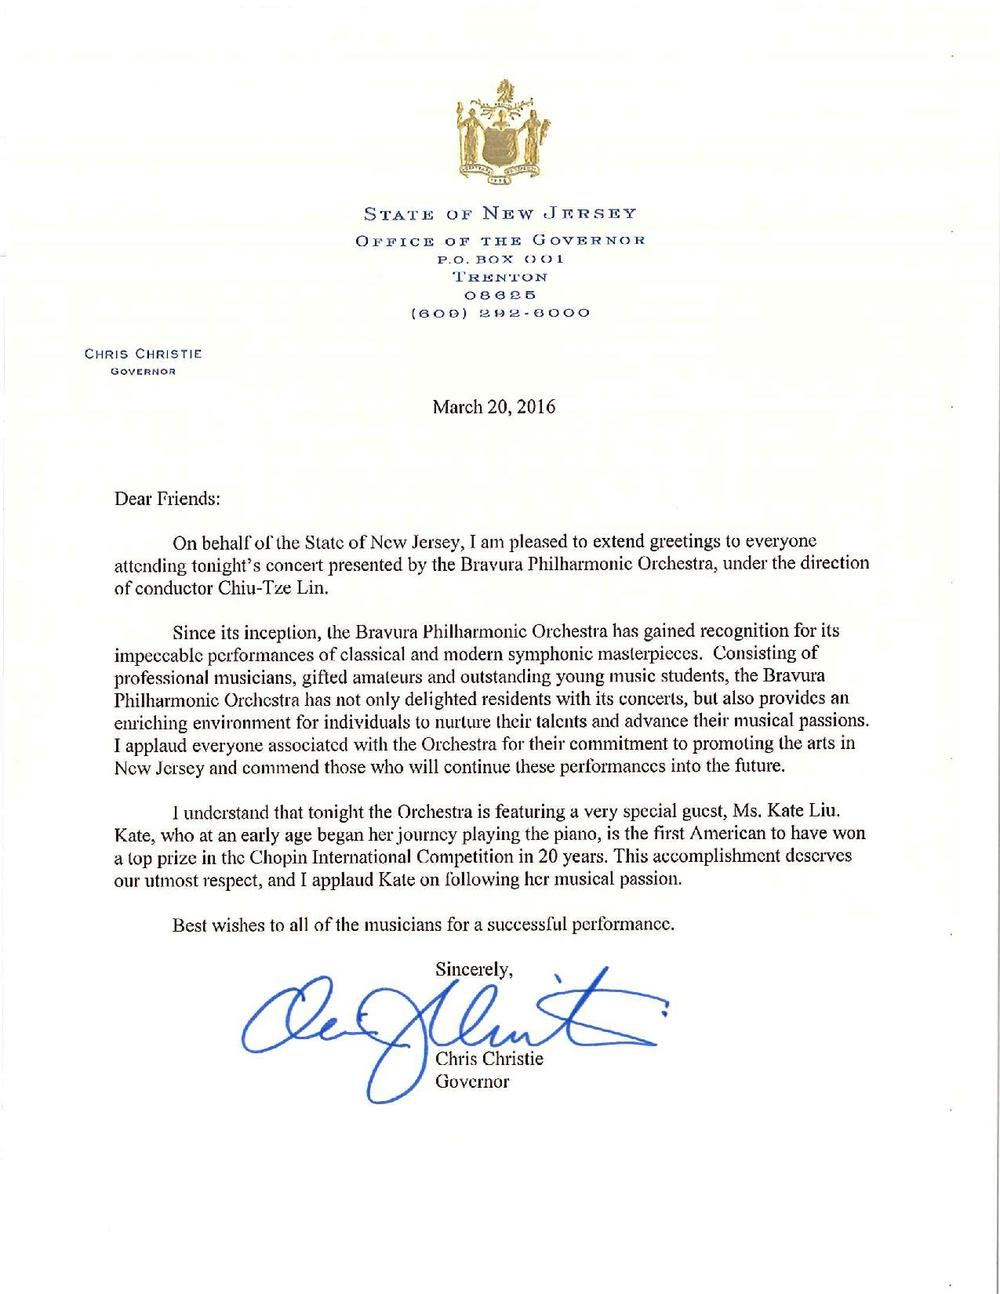 Letter from New Jersey governor Chris Christie